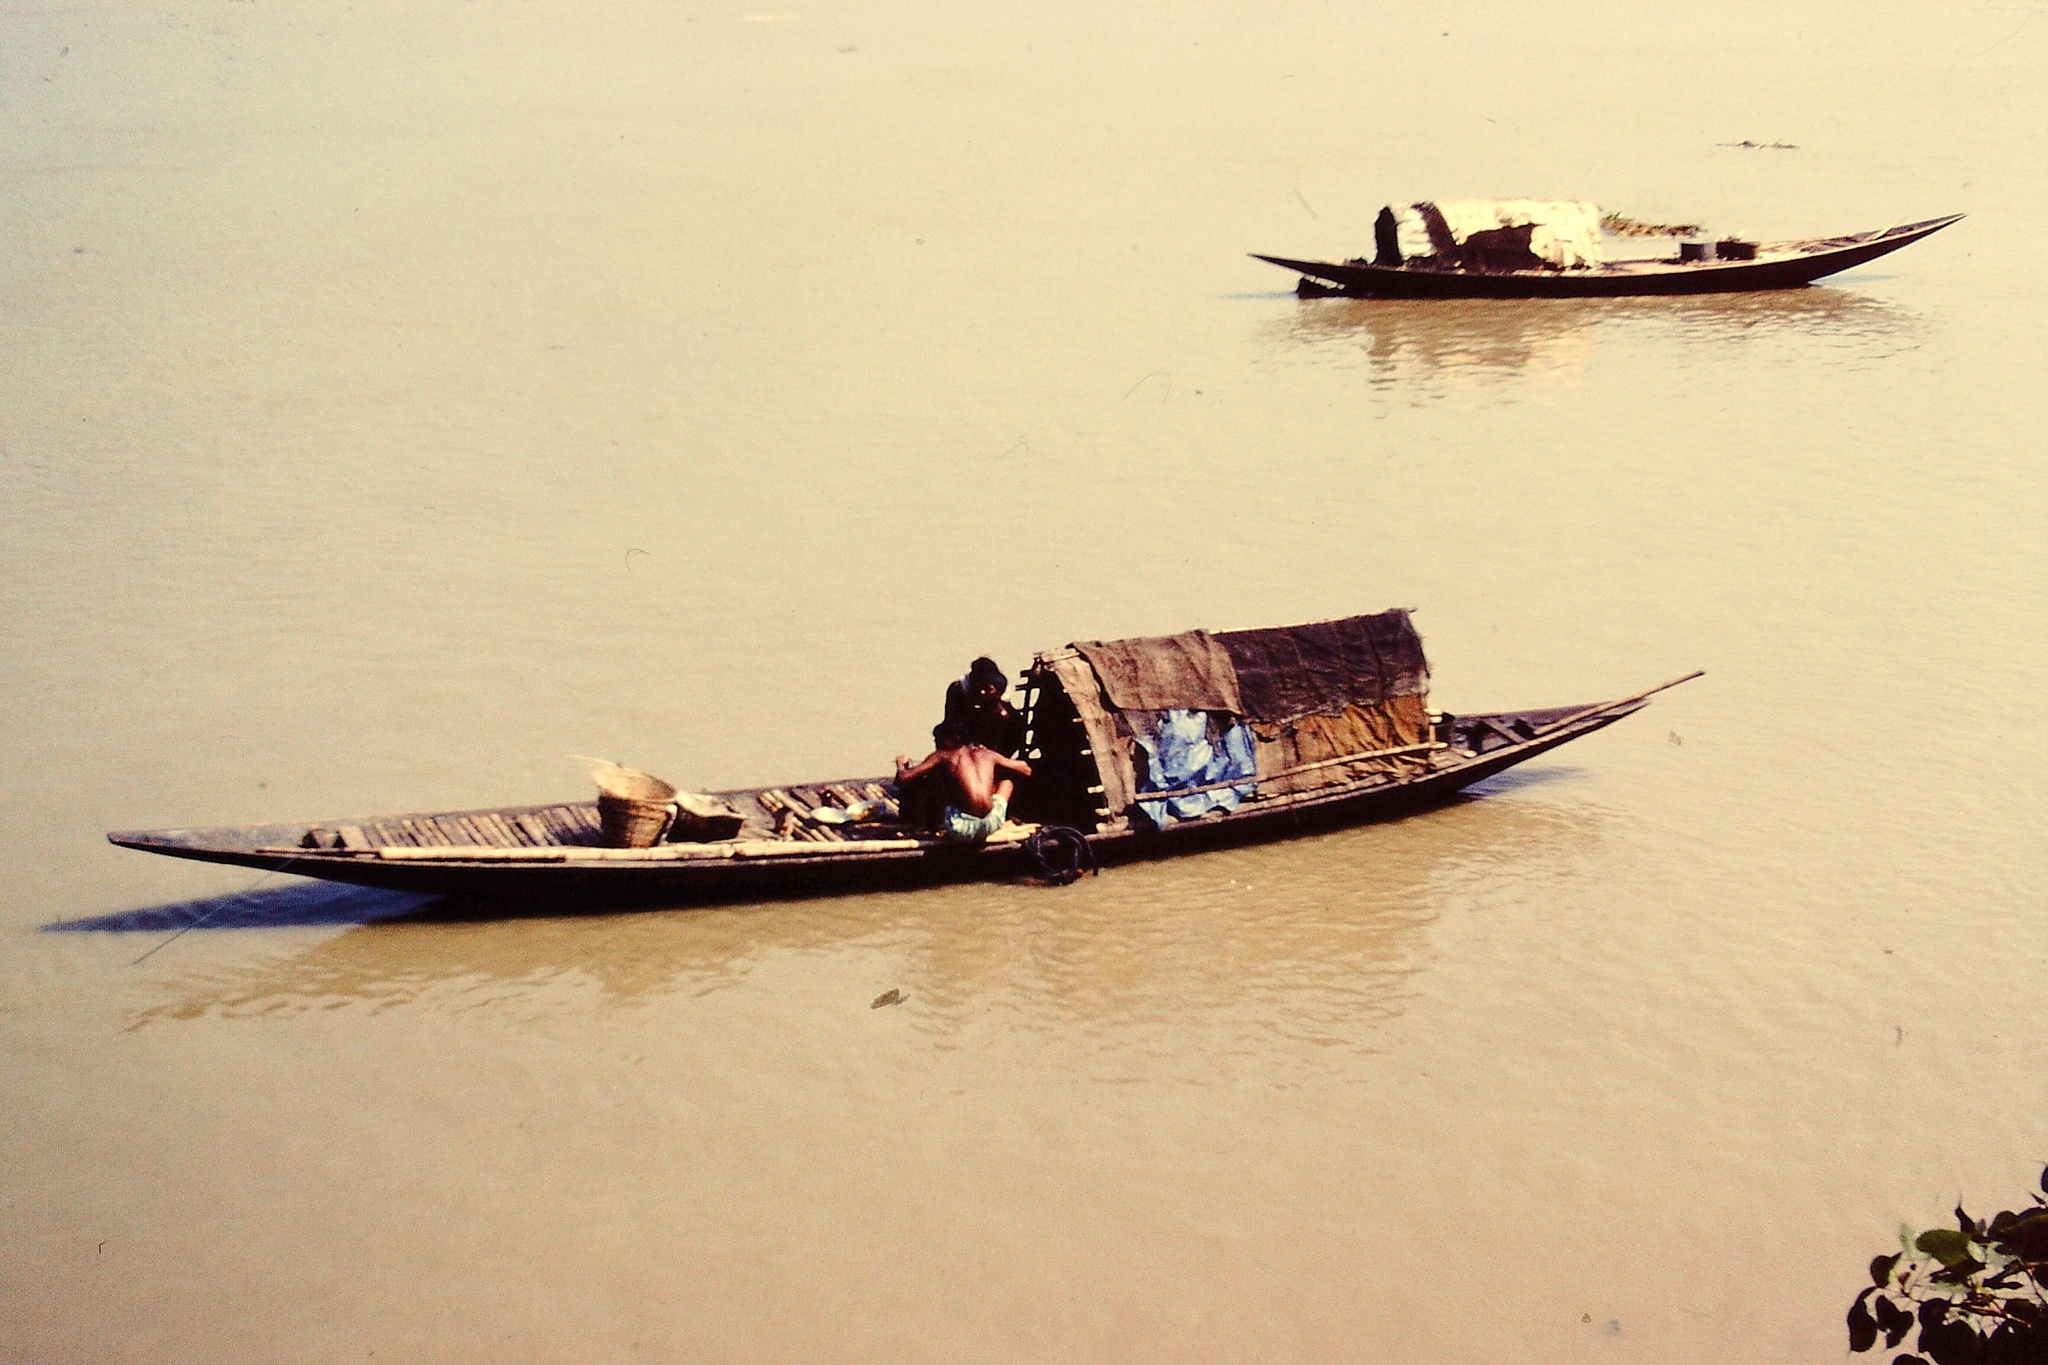 THE RIVER GANGES, CALCUTTA, INDIA by Akin Saner